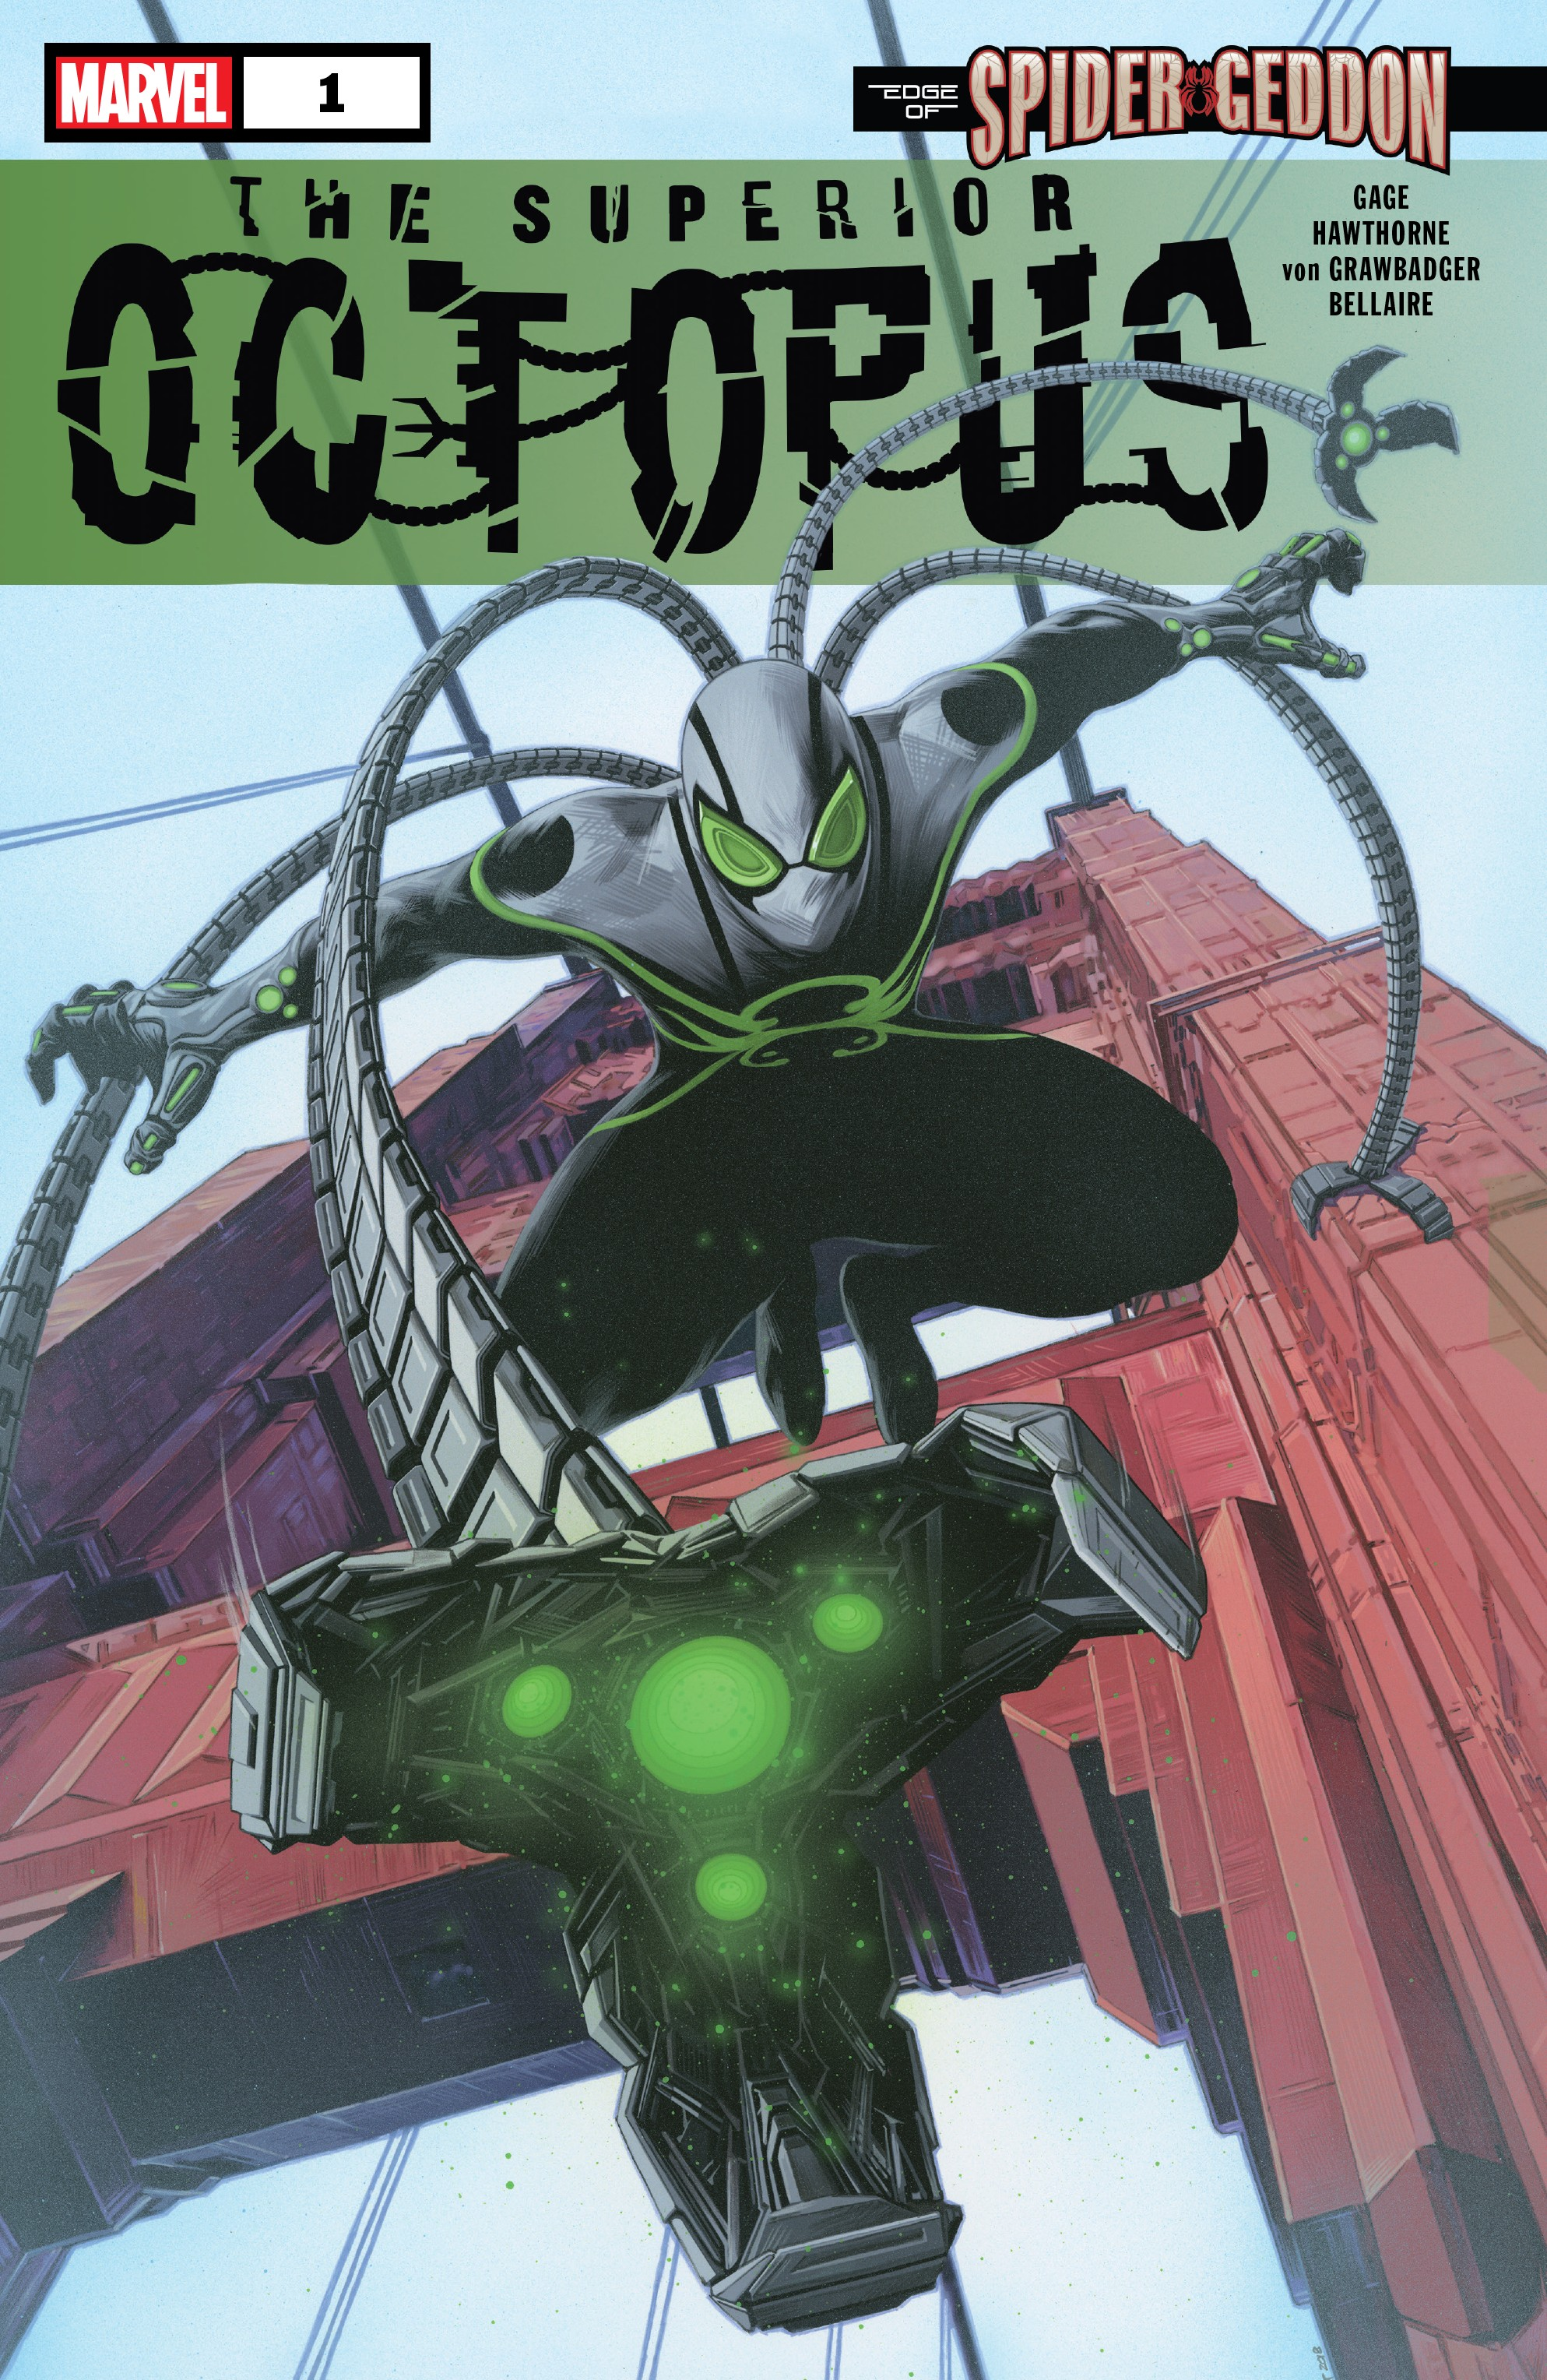 Superior Octopus 1 Superior Spider Man Prelude Marvel spoilers 0 A - There really are so many more suits Insomniac can use in the next game.